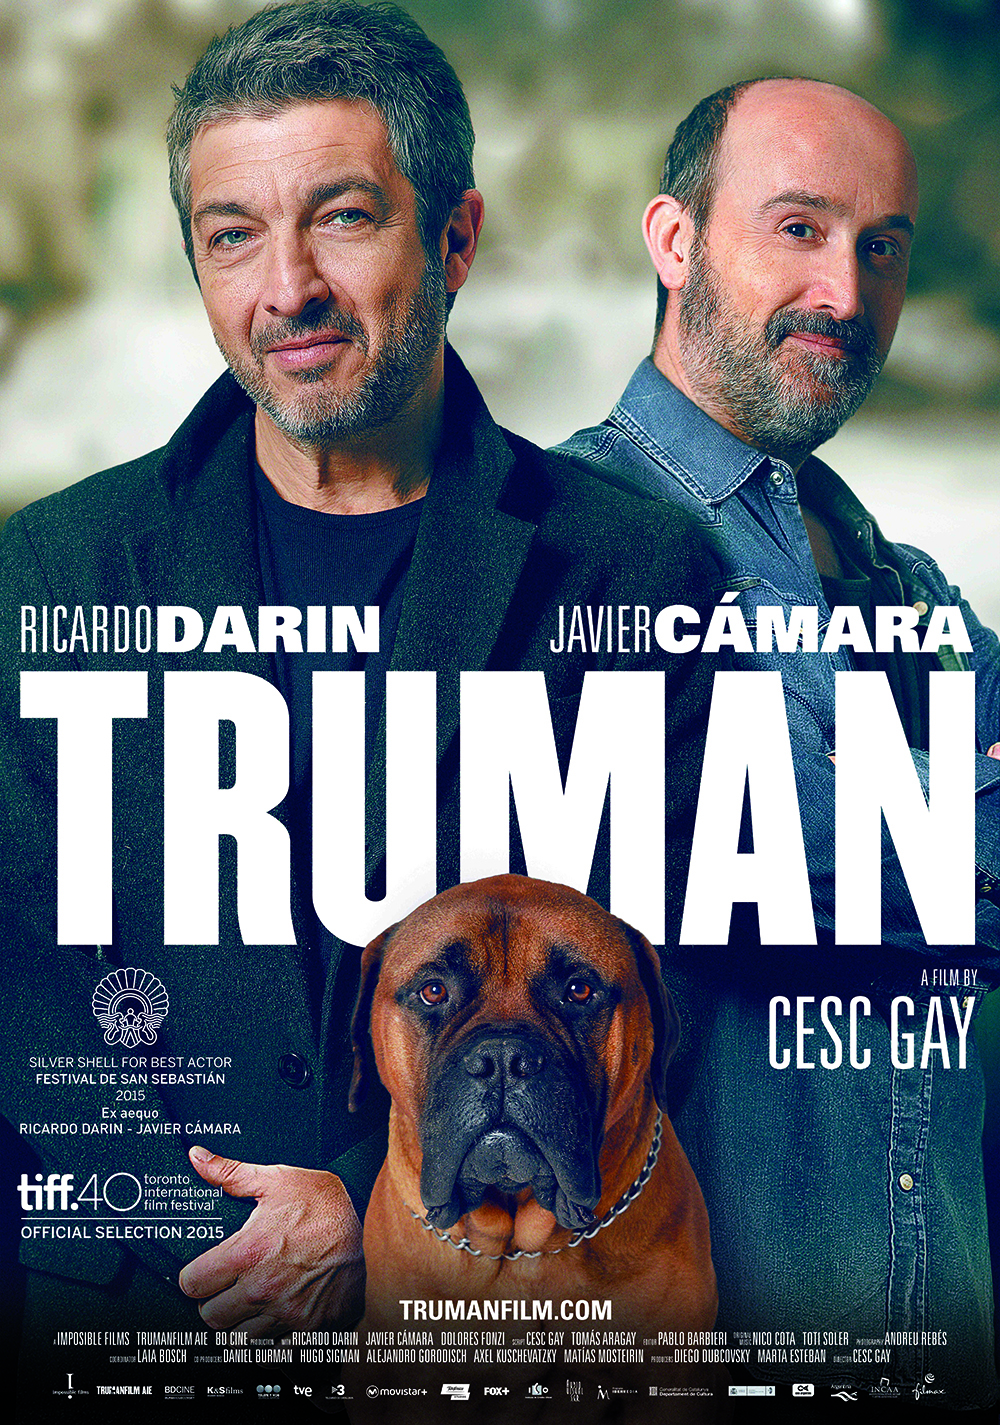 Movie poster for the film, Truman.